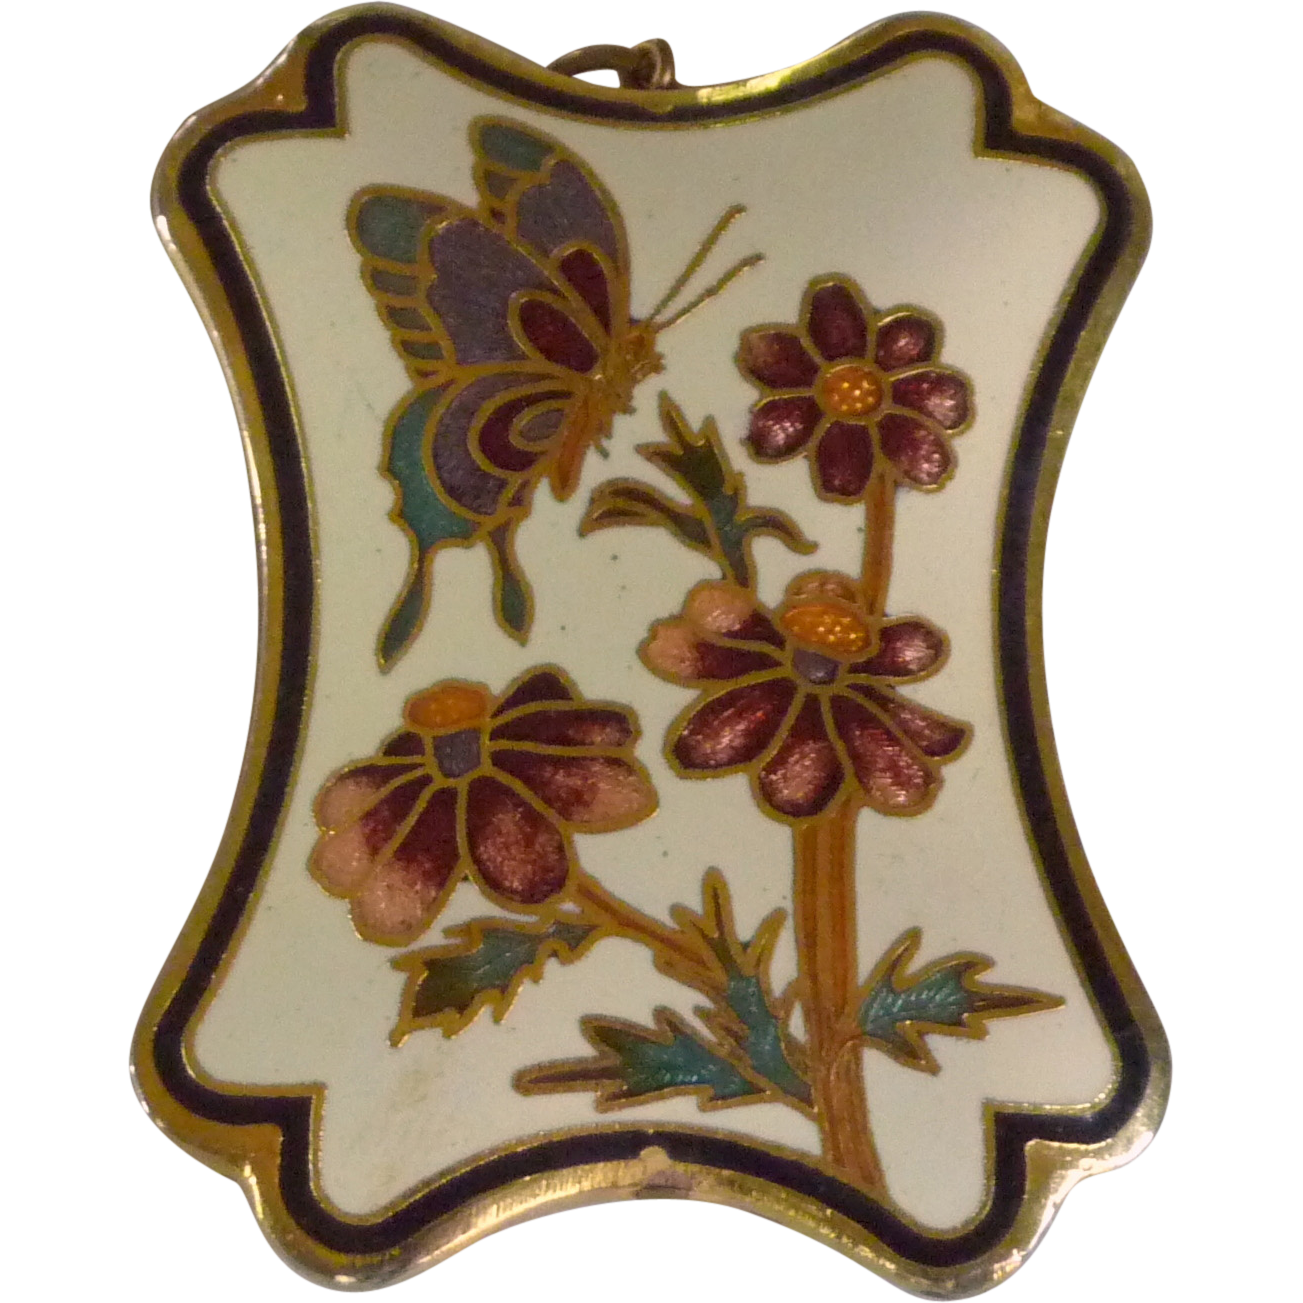 Cloisonné Pendant Necklace with Flowers and Butterfly Design